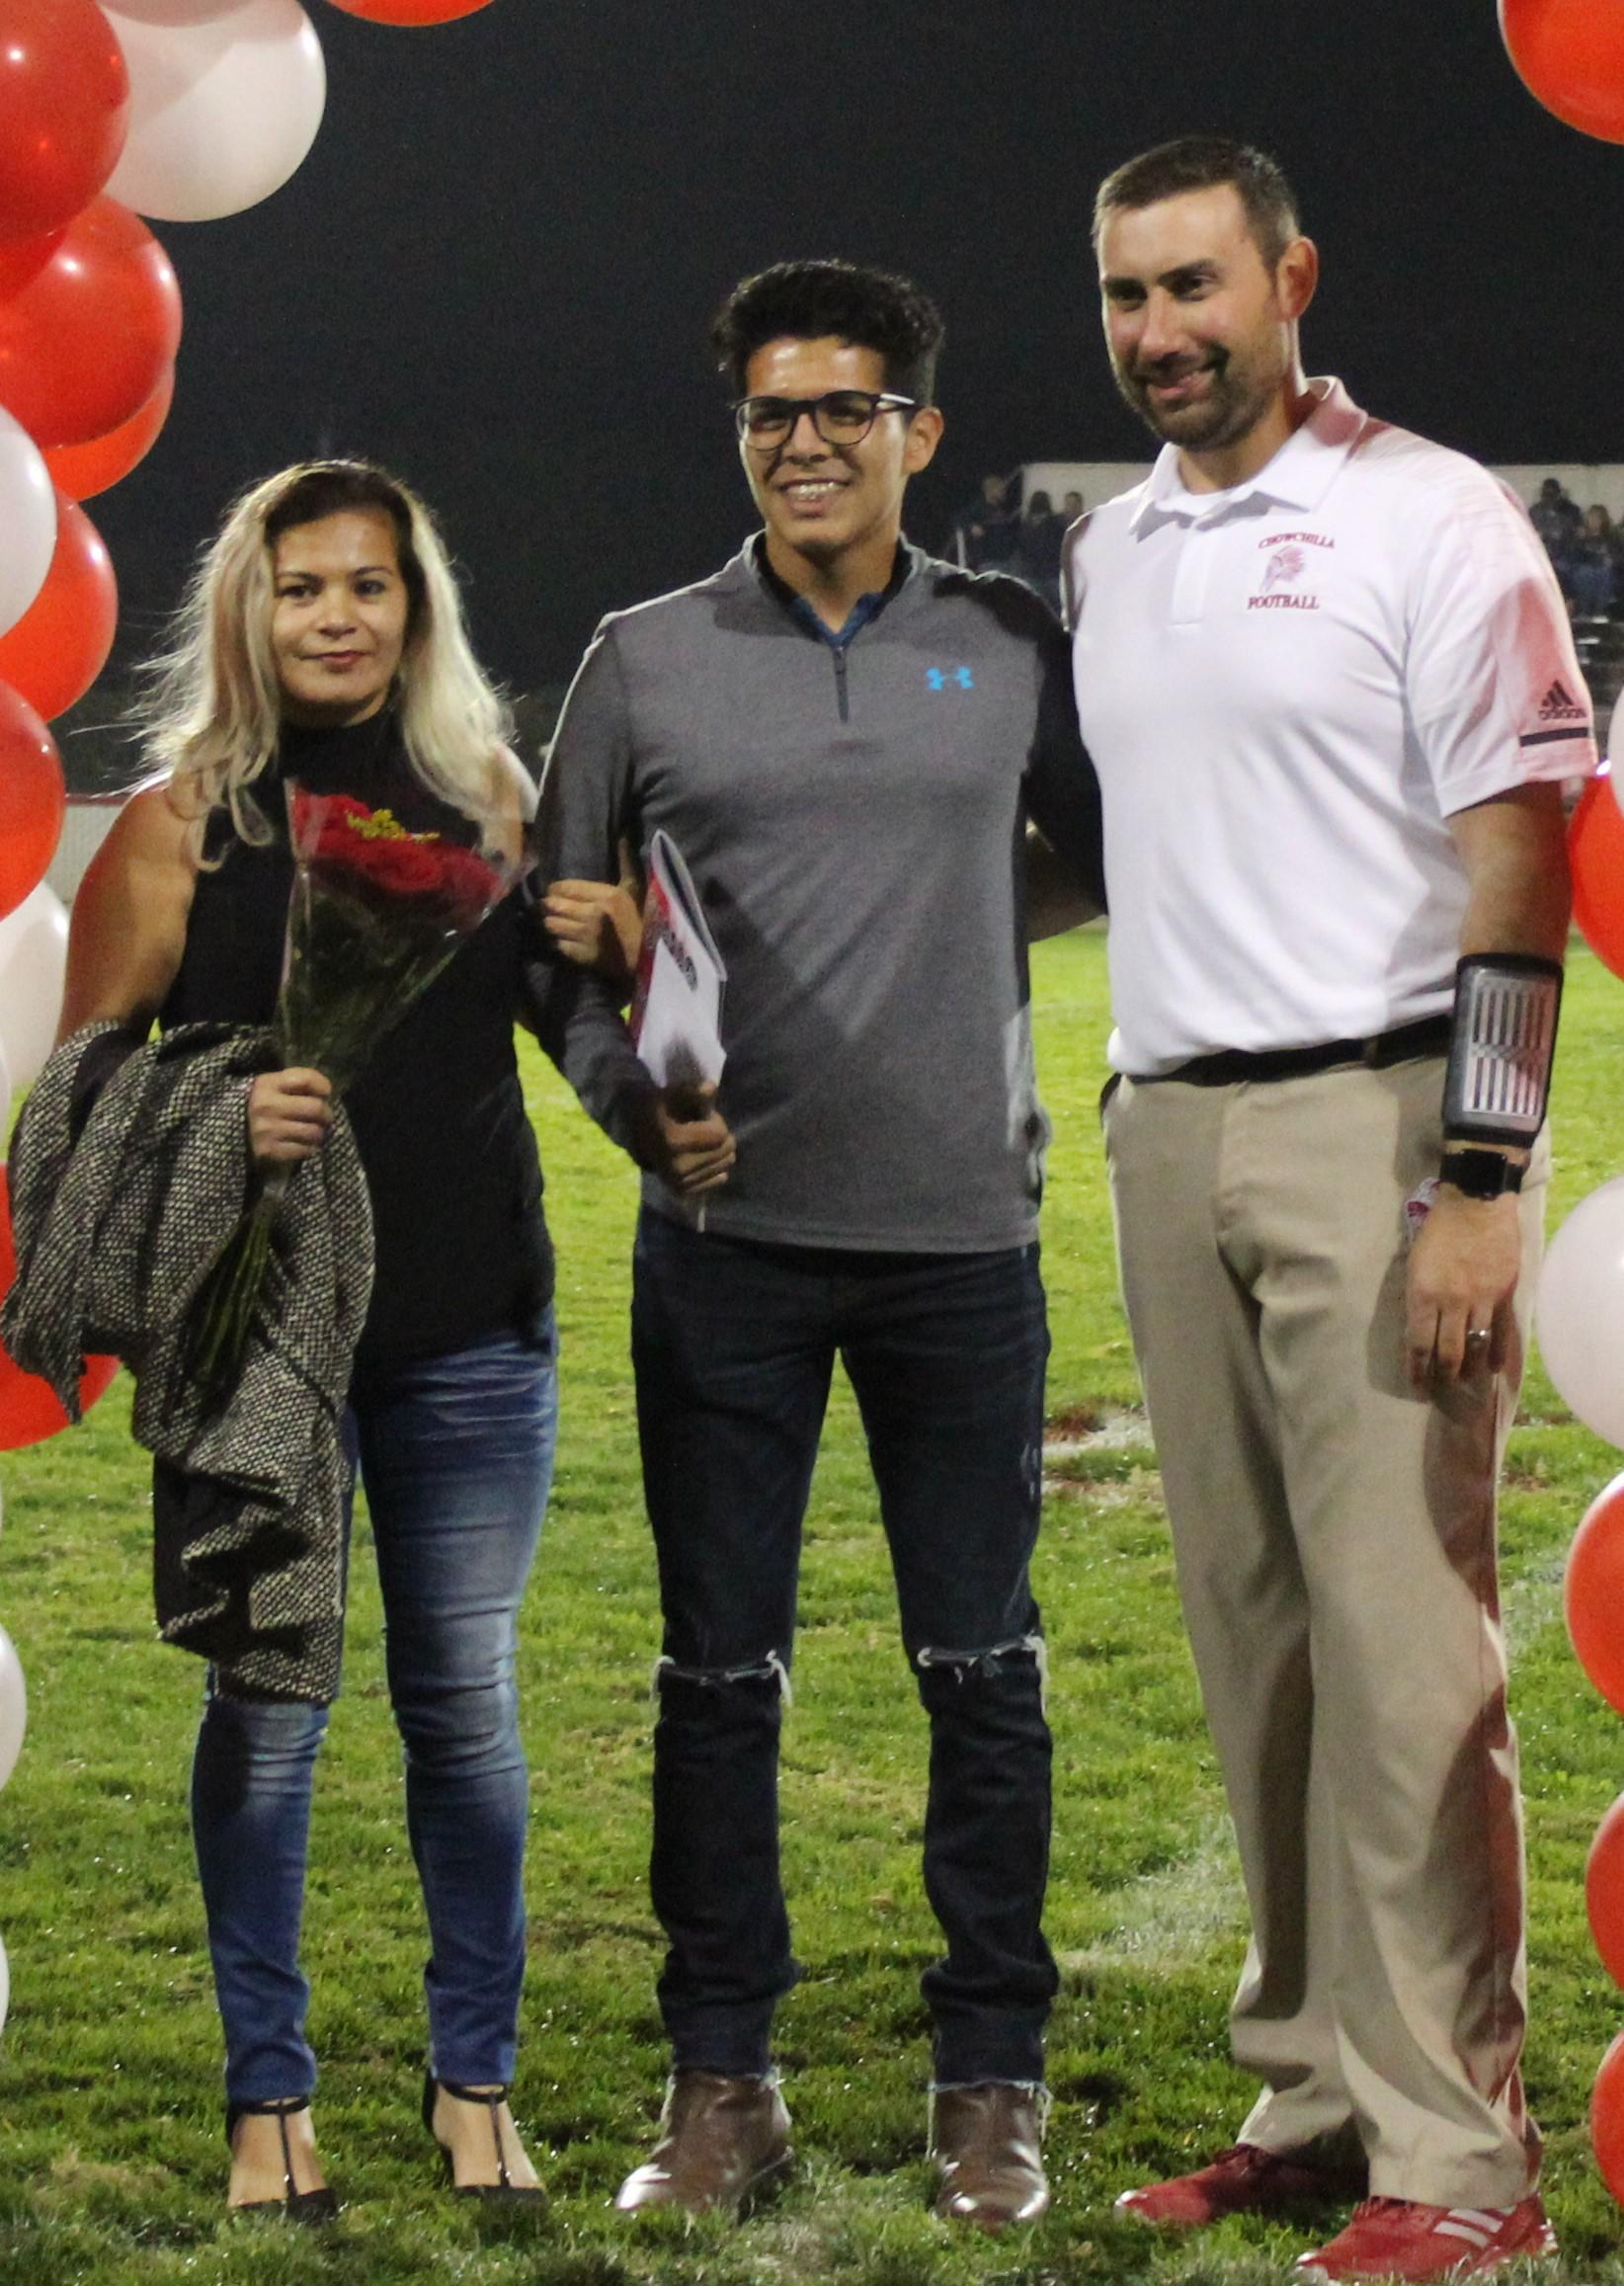 Kristean Robles and his supporters at Senior Night.